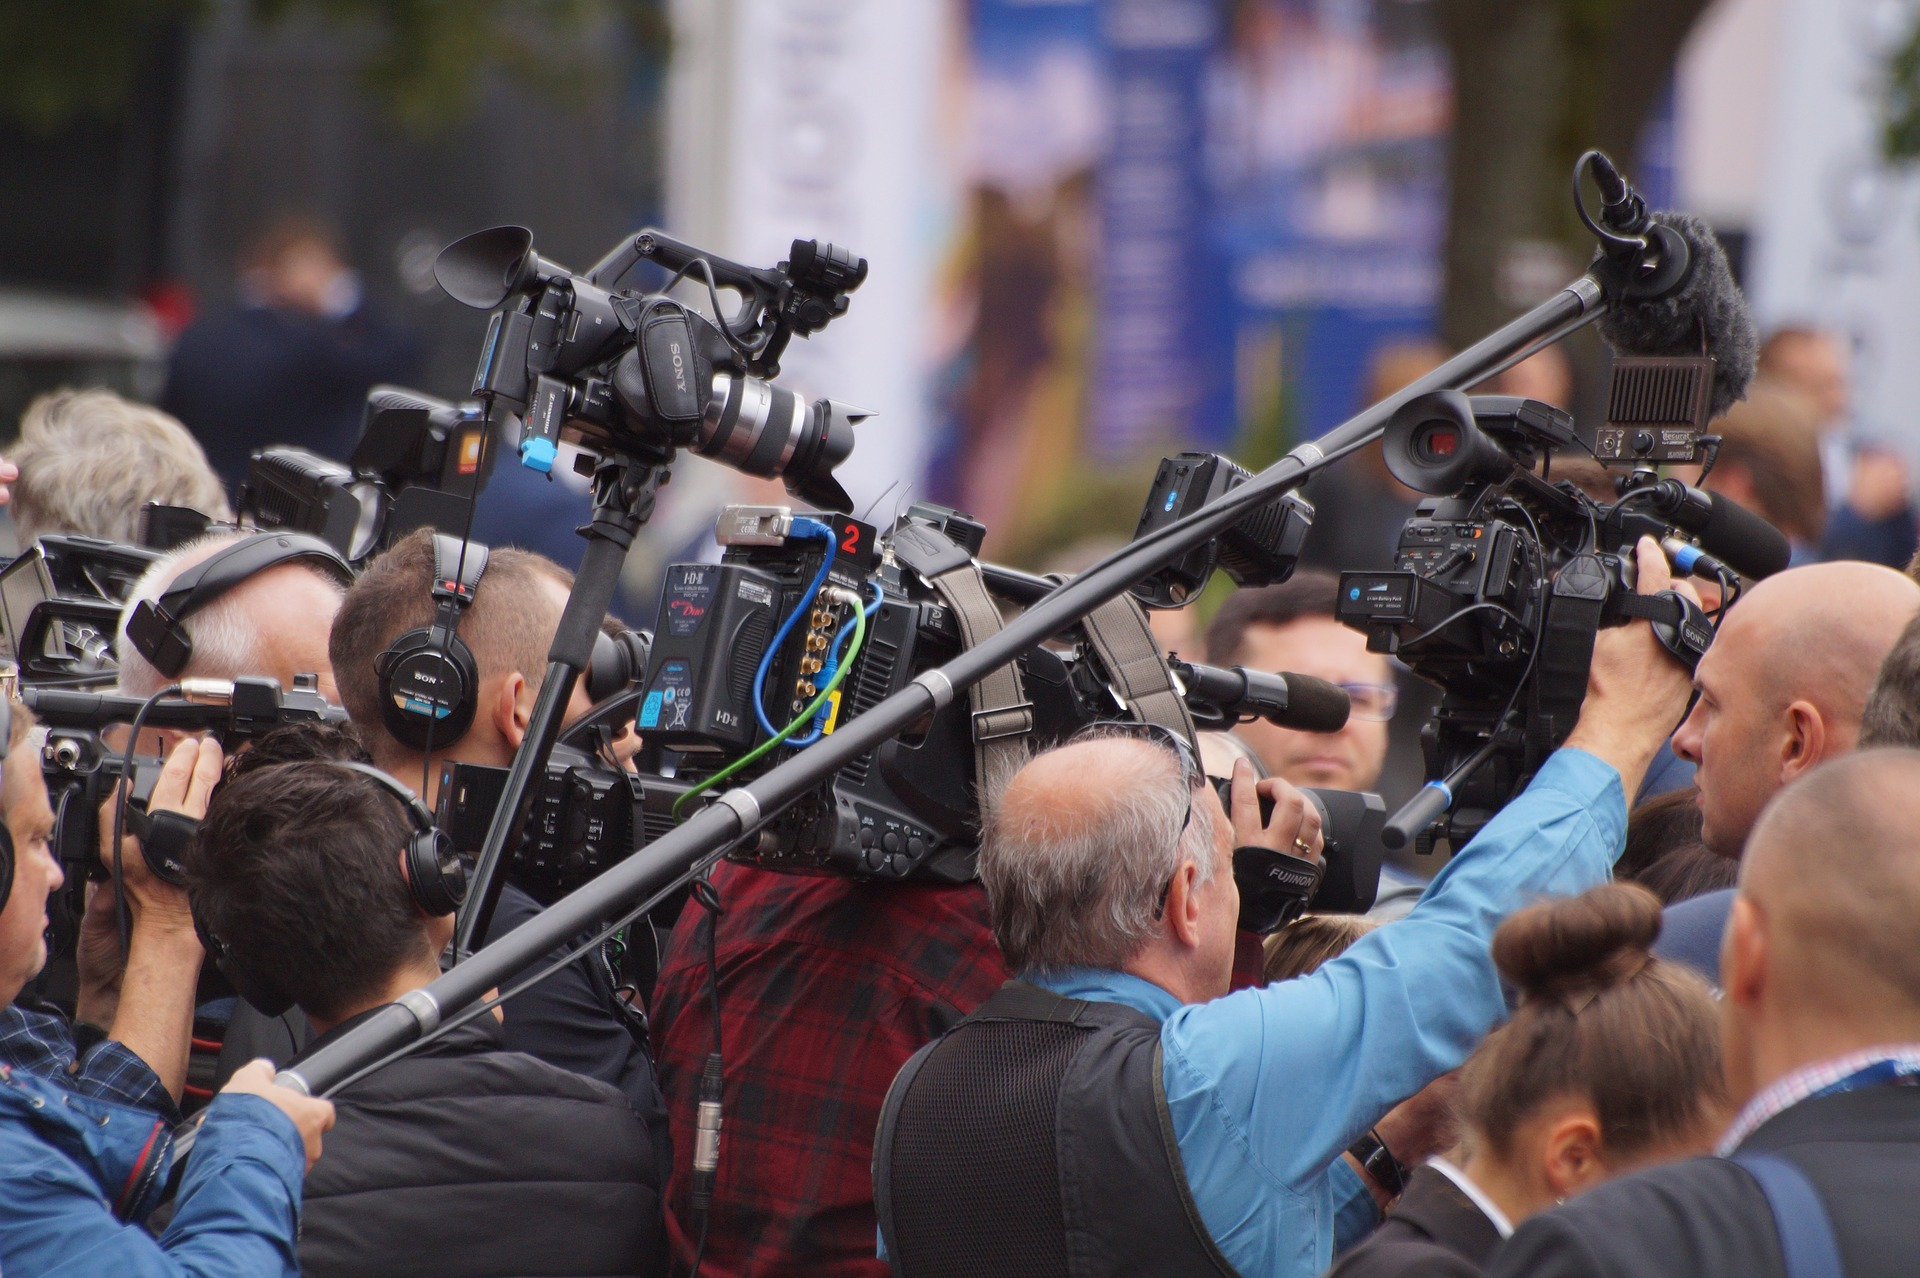 Making Sense of it All (without making your head spin) – Navigating the 24-hour news cycle